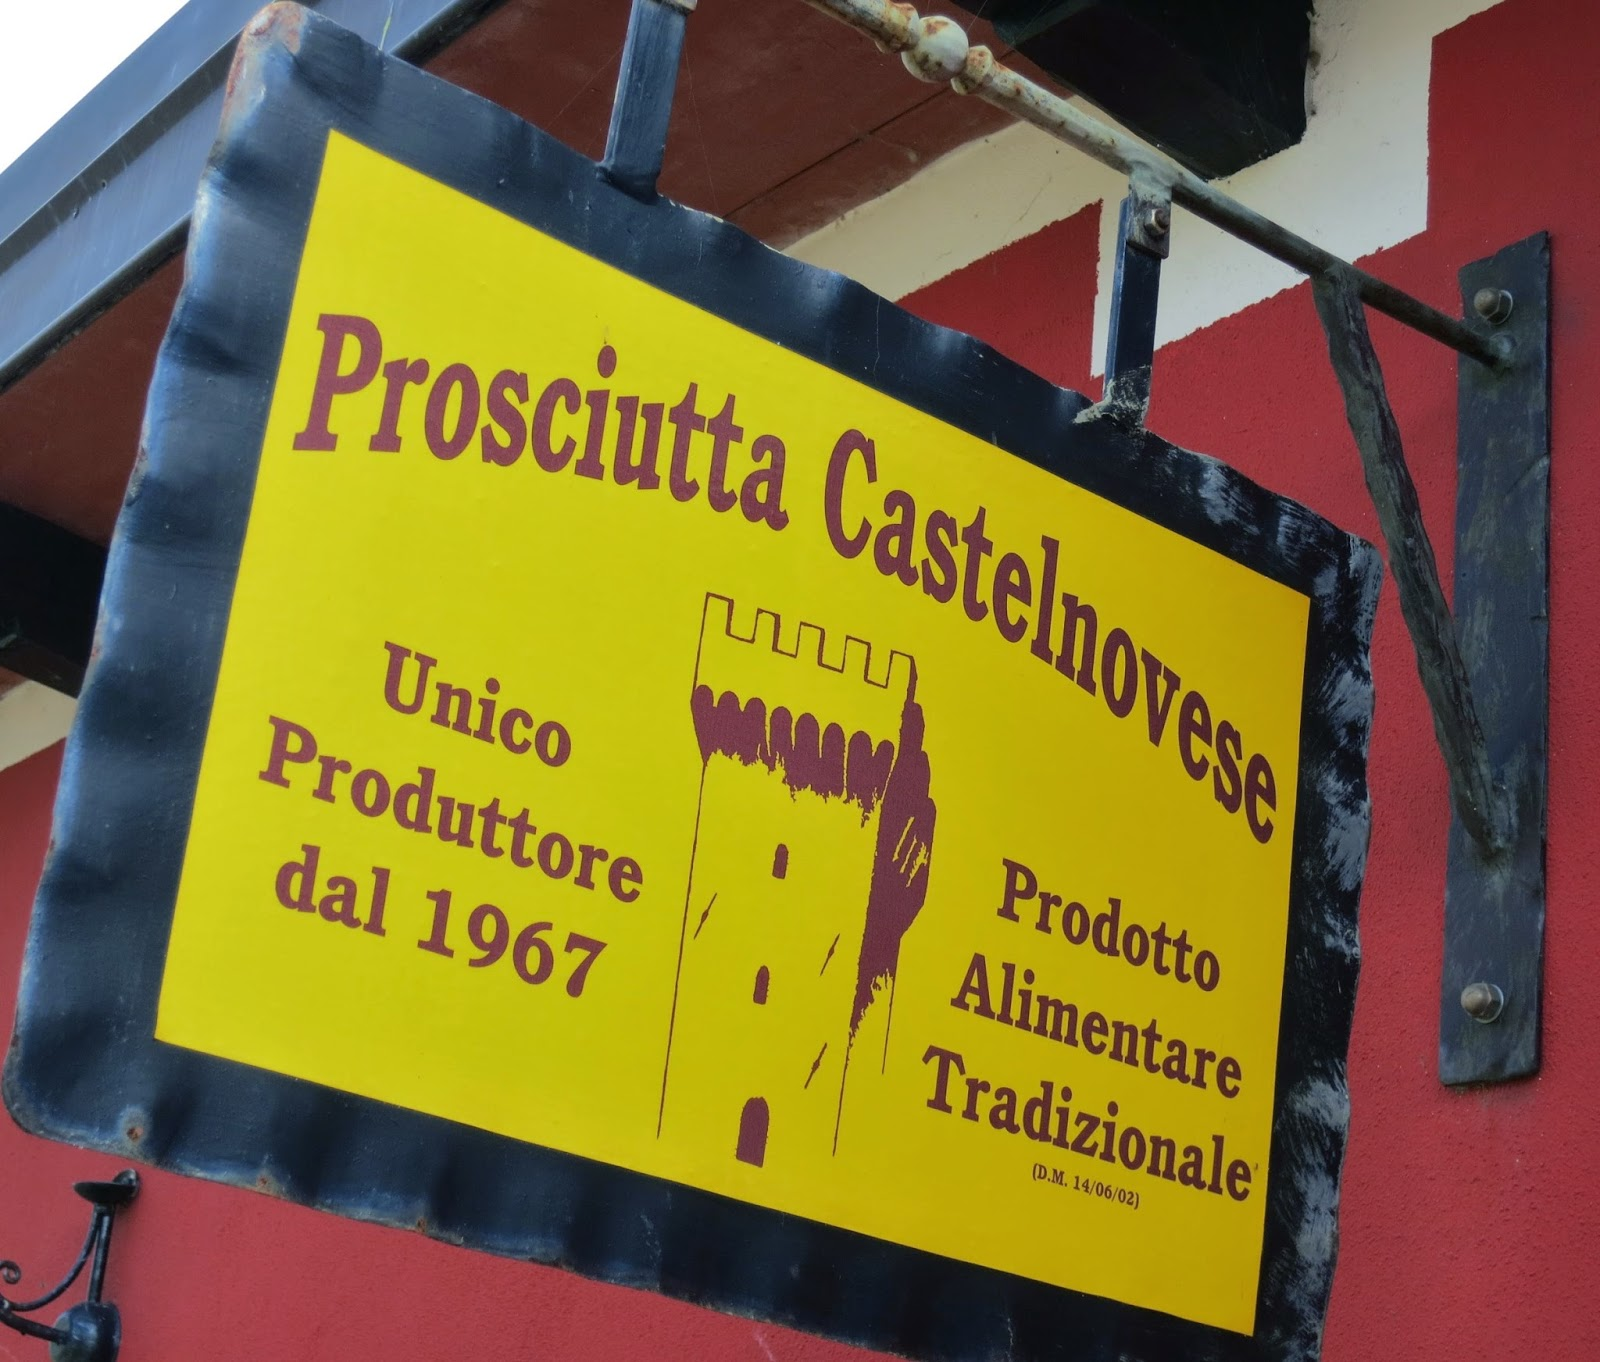 Sign for Prosciutta, the patented ham